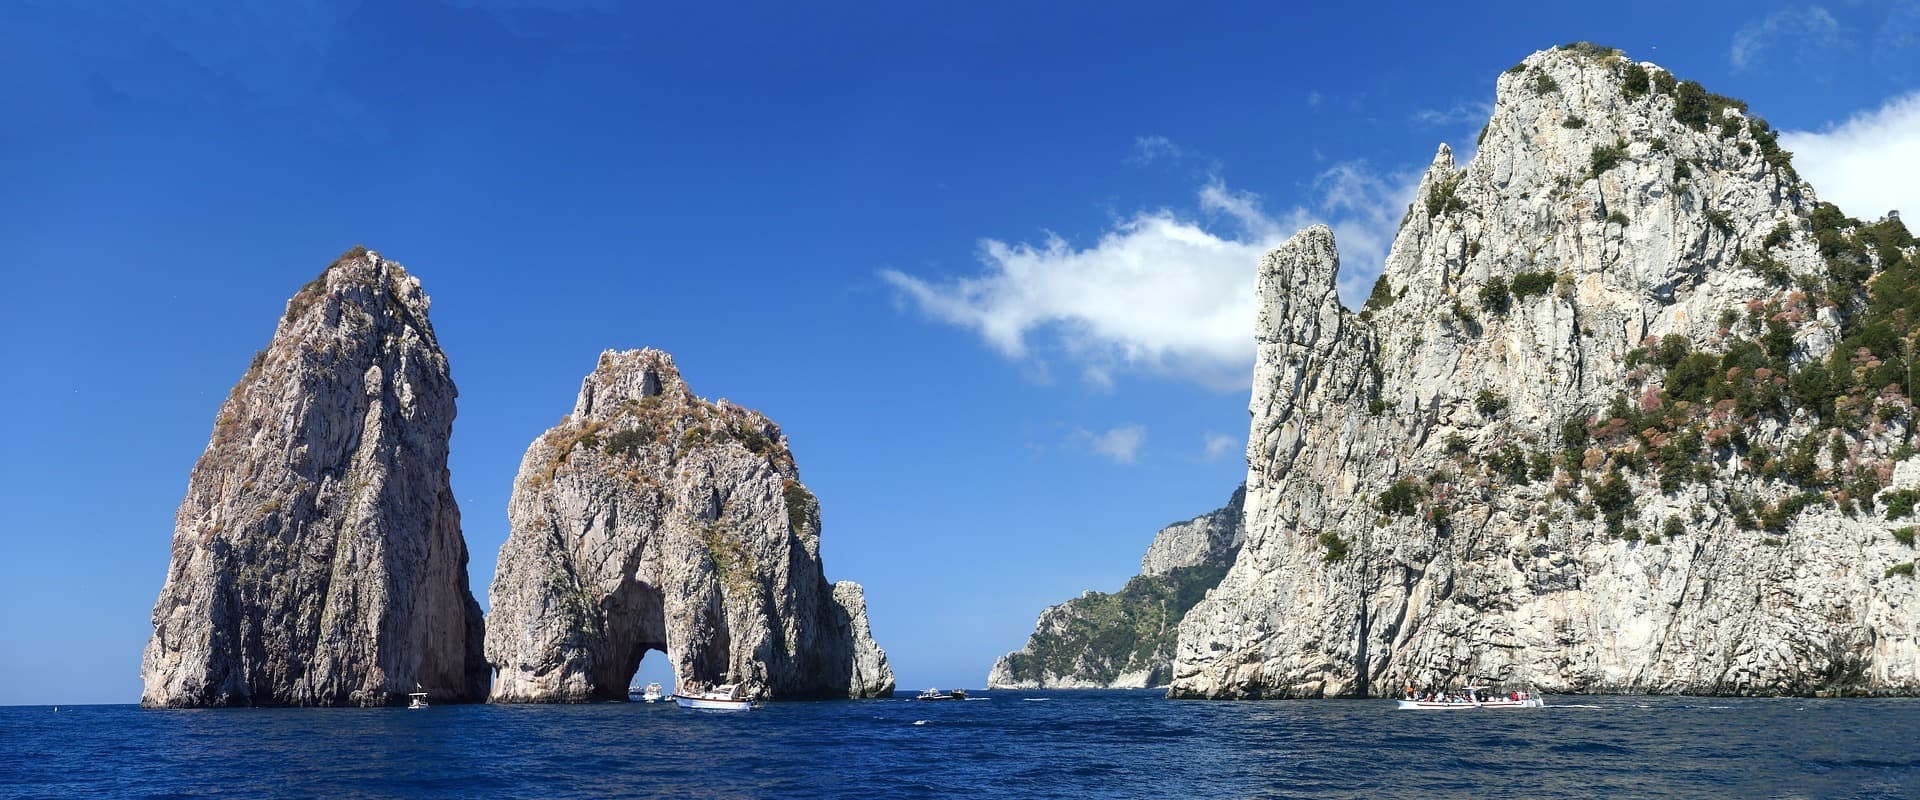 Liveaboards in Italy - LiveAboard.com